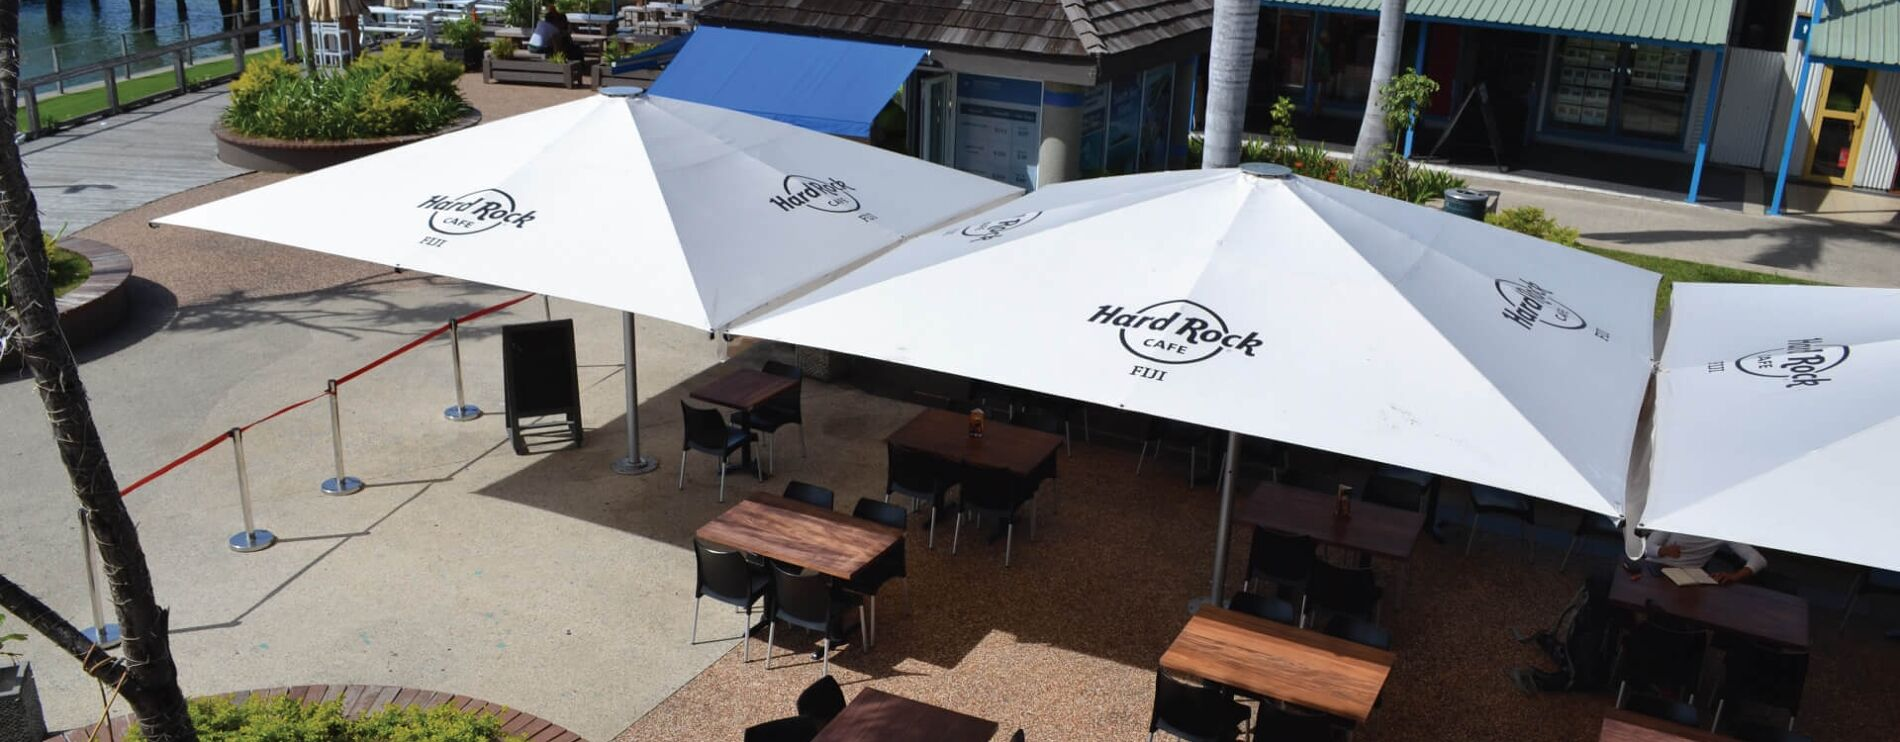 Giant Square Commercial Outdoor Umbrellas with Printing